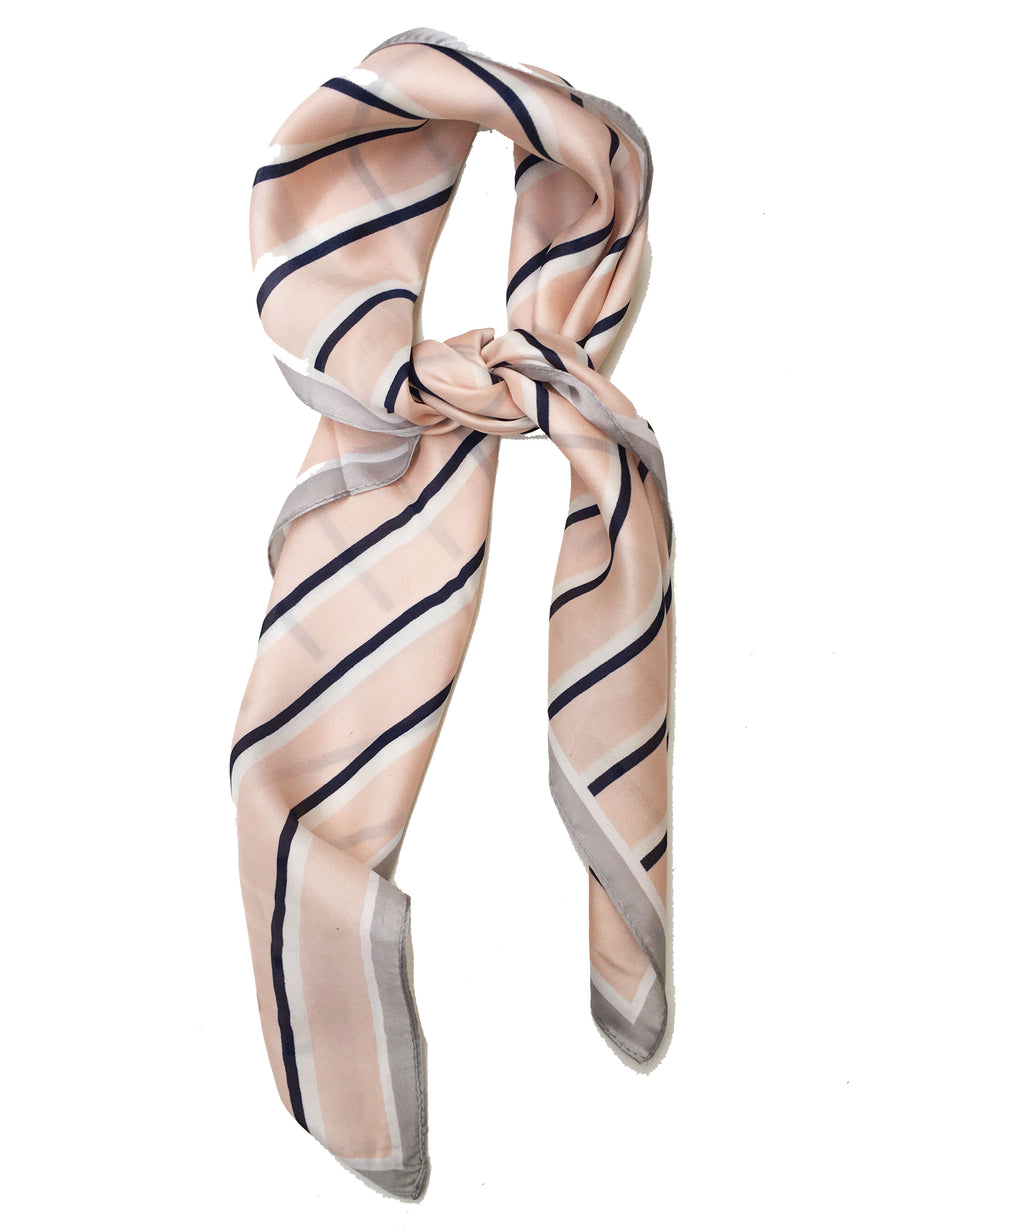 Big Square Ladies Womans Faux Silk Head Neck Thin Scarf Bag Charm - 70cm x 70cm[Black and Nude Peach Pink Stripes]